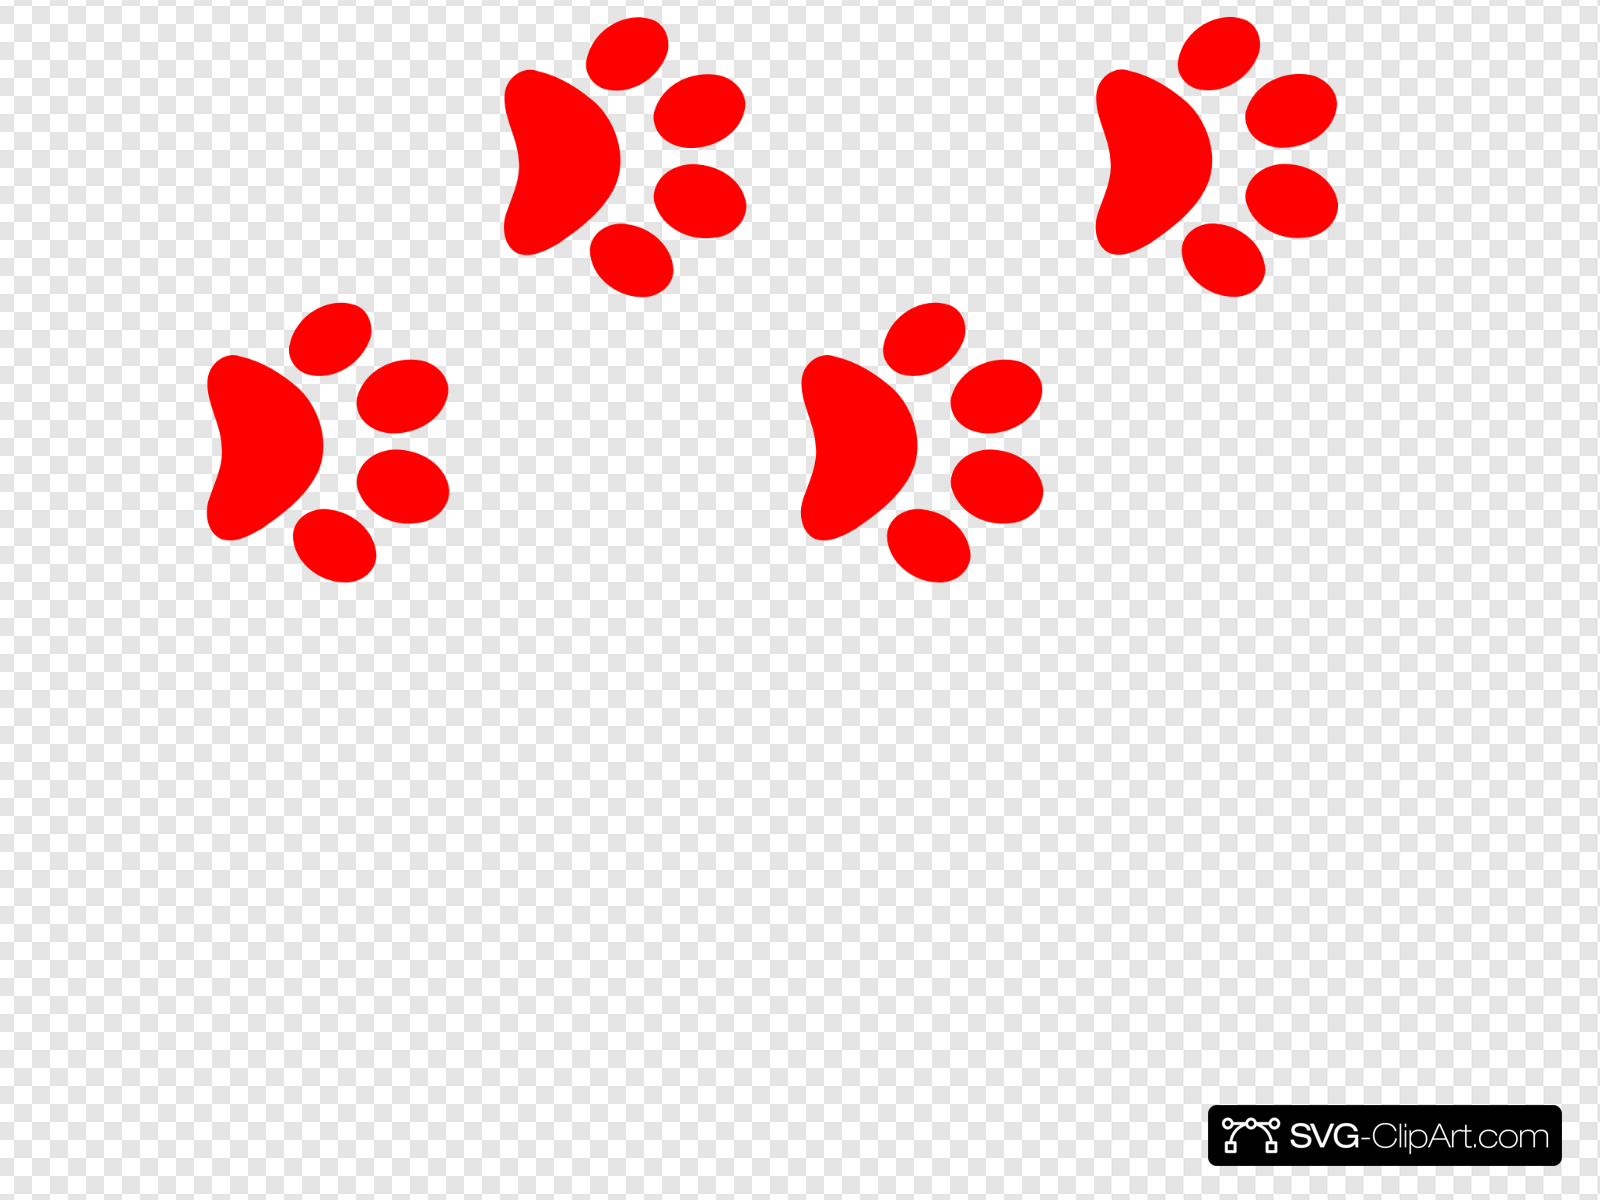 Red Paw Print Border Clip art, Icon and SVG.